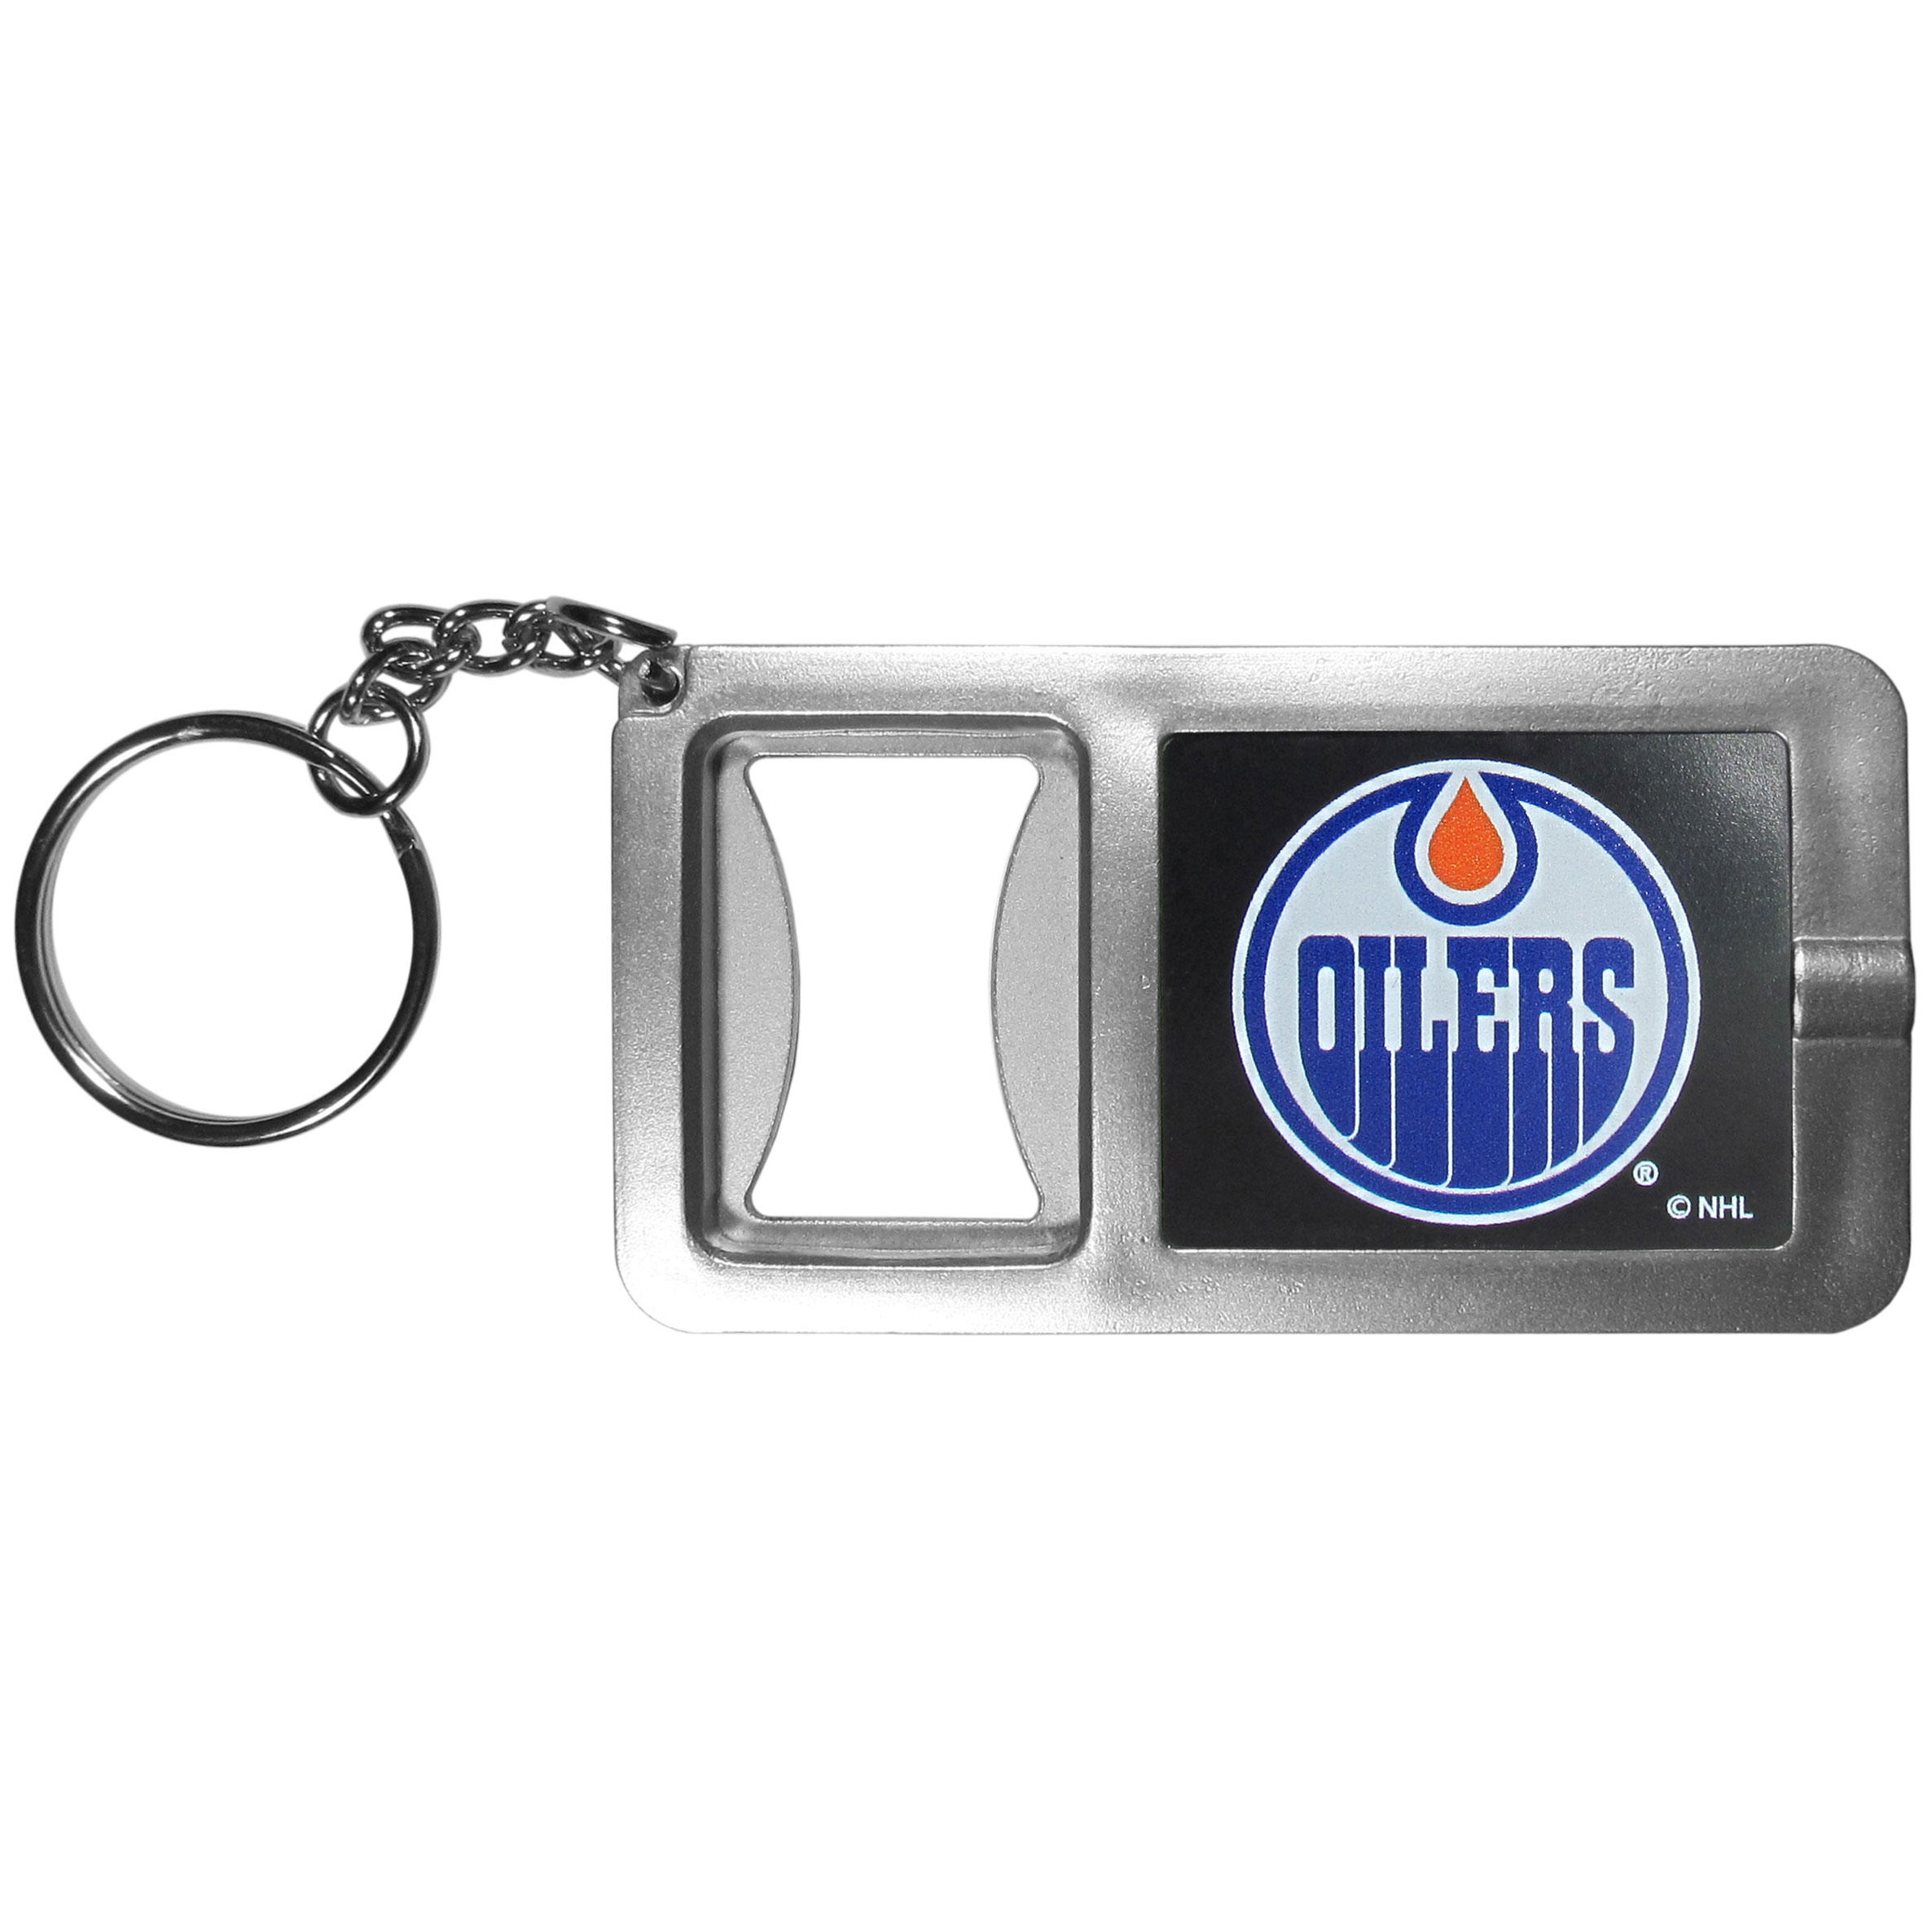 Edmonton Oilers® Flashlight Key Chain with Bottle Opener - Never be without light with our Edmonton Oilers® flashlight keychain that features a handy bottle opener feature. This versatile key chain is perfect for camping and travel and is a great way to show off your team pride!